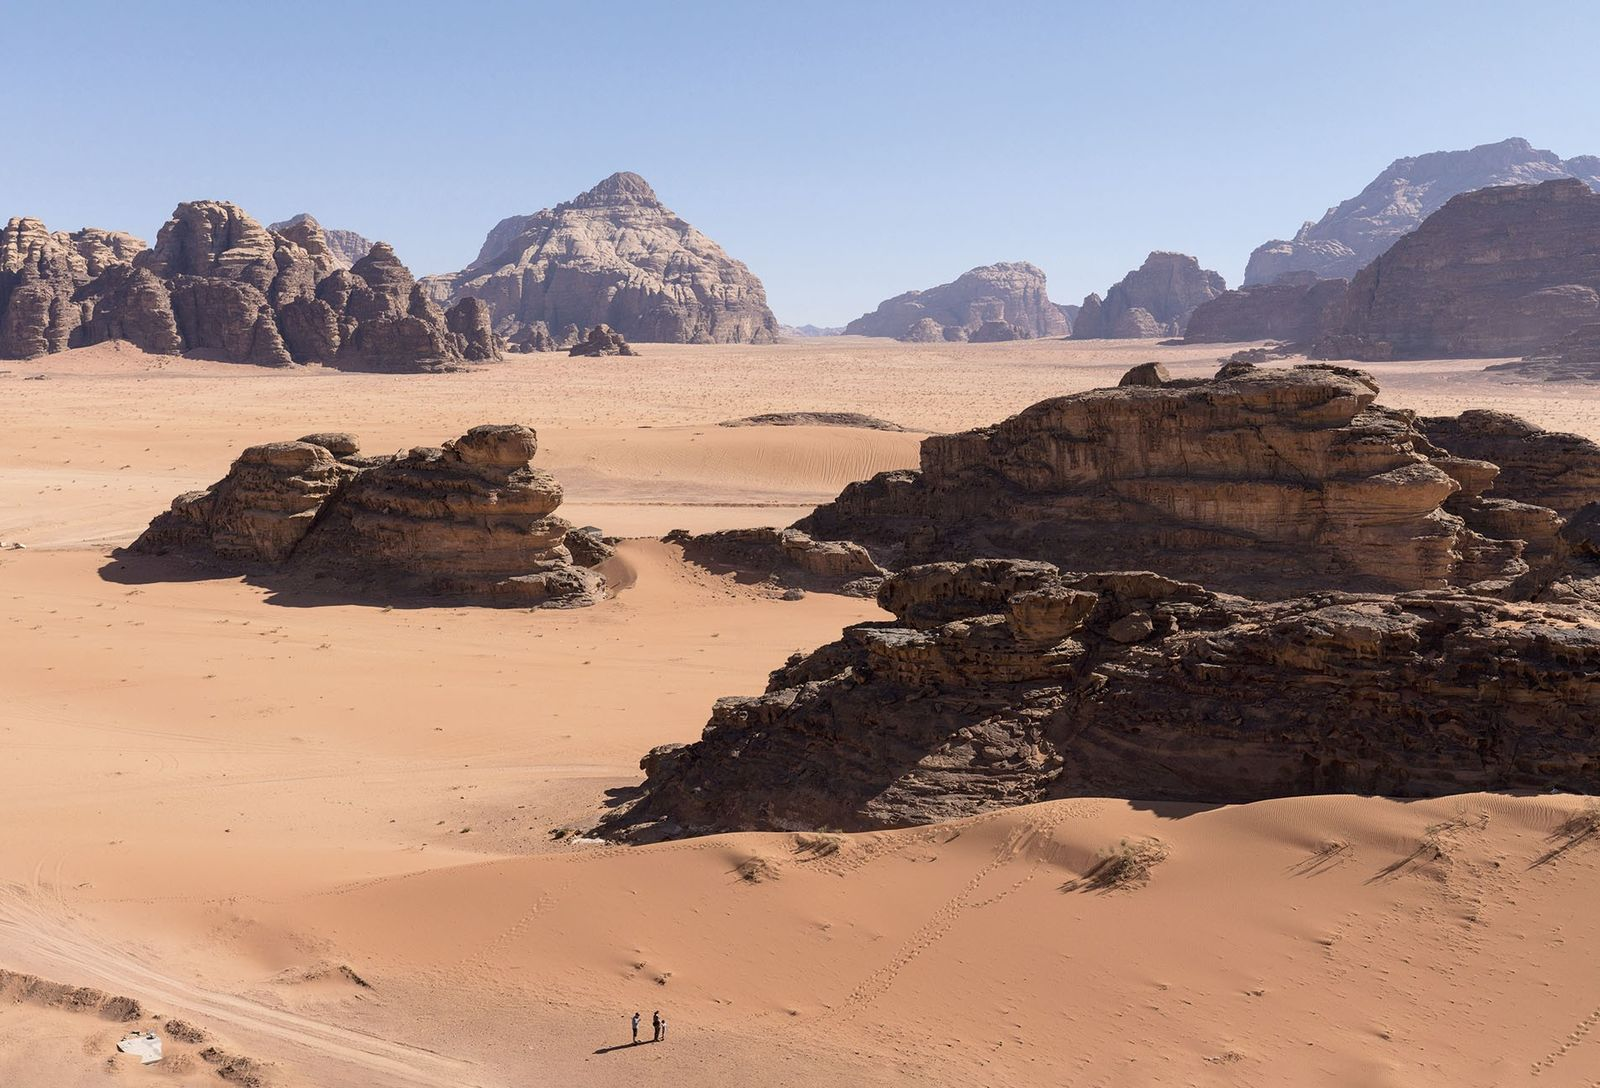 Sandstone formations in Wadi Rum.